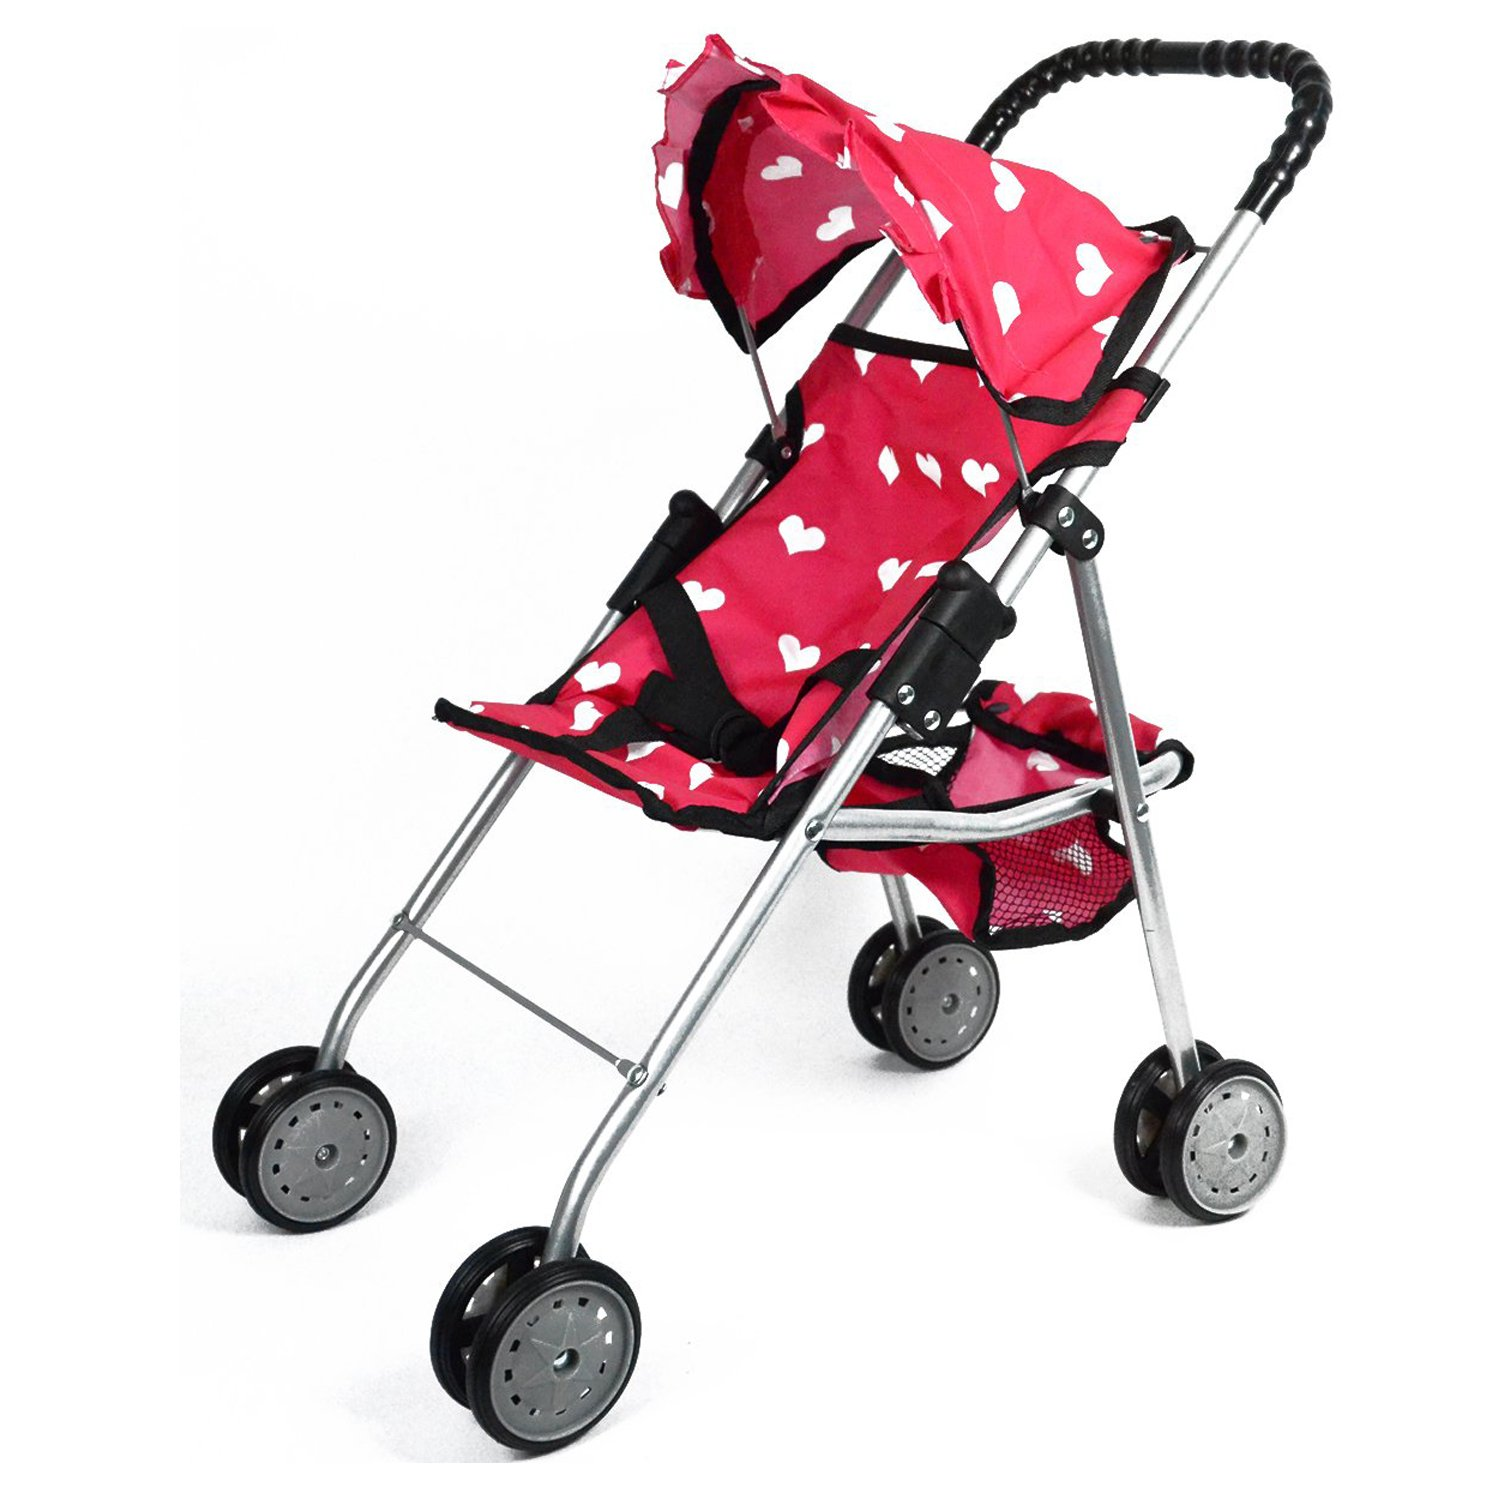 Amazon.com: Strollers - Doll Accessories: Toys & Games